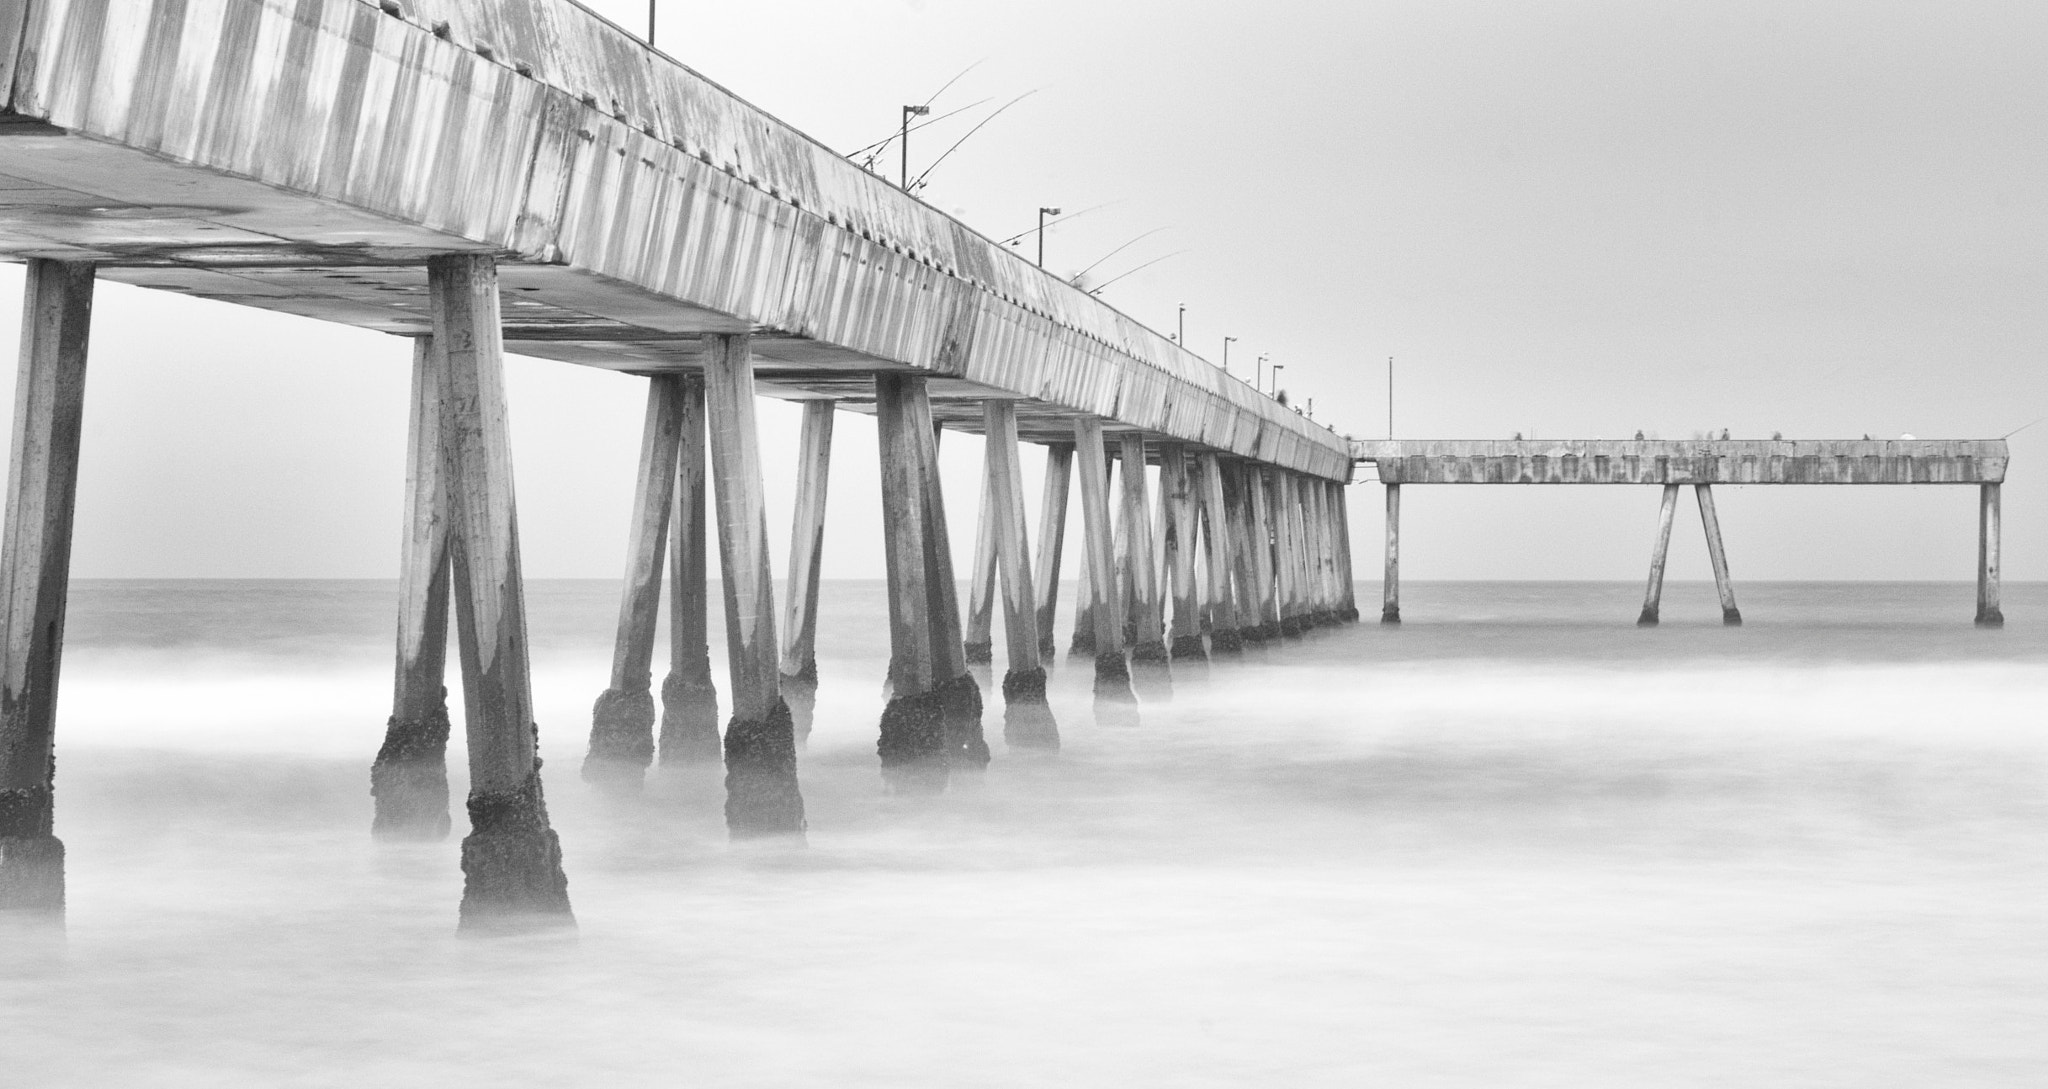 Photograph Fishing Pier by Kevin Curtin on 500px